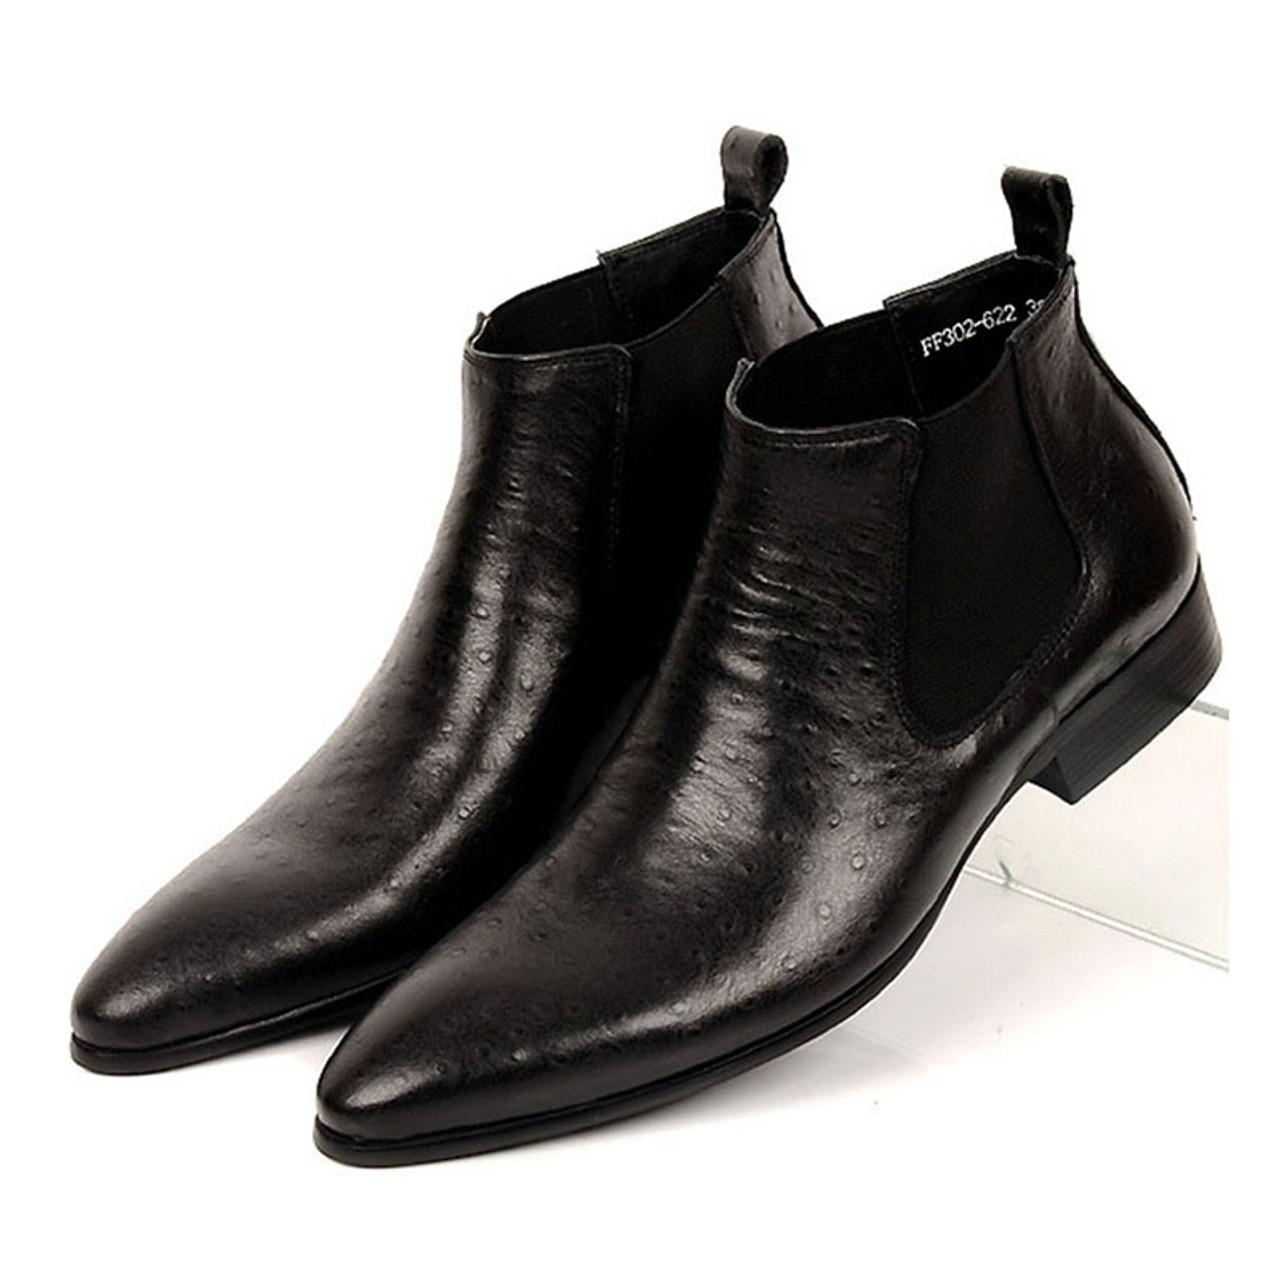 Mens Dress Boots For Sale Online Trendy Ankle Boots Business